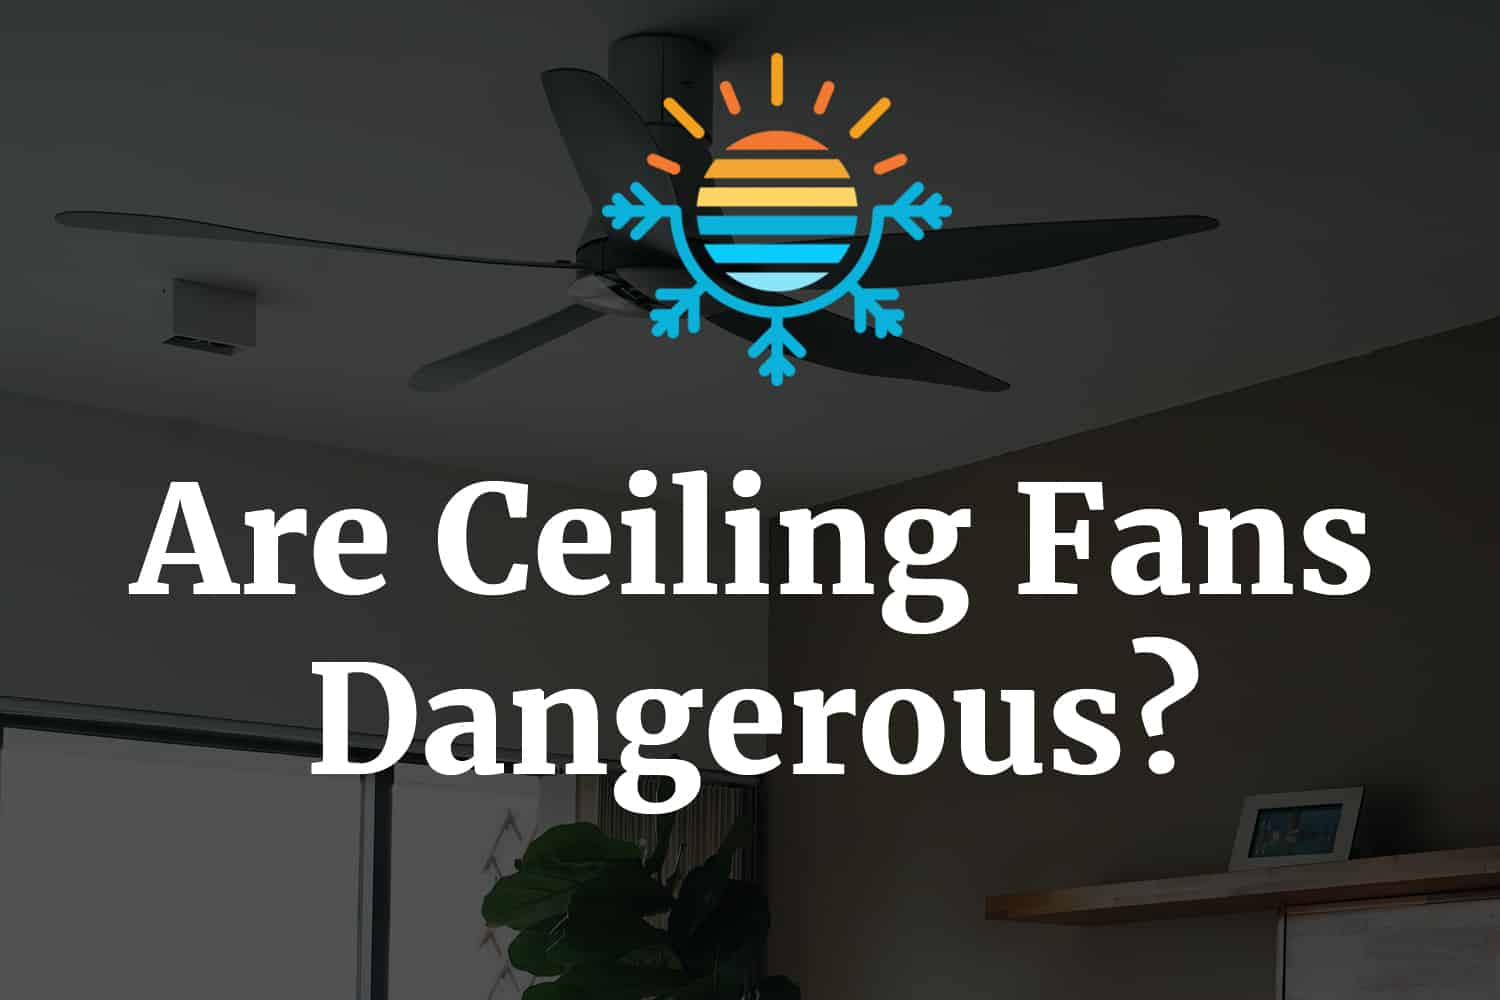 Are Ceiling Fans Dangerous?